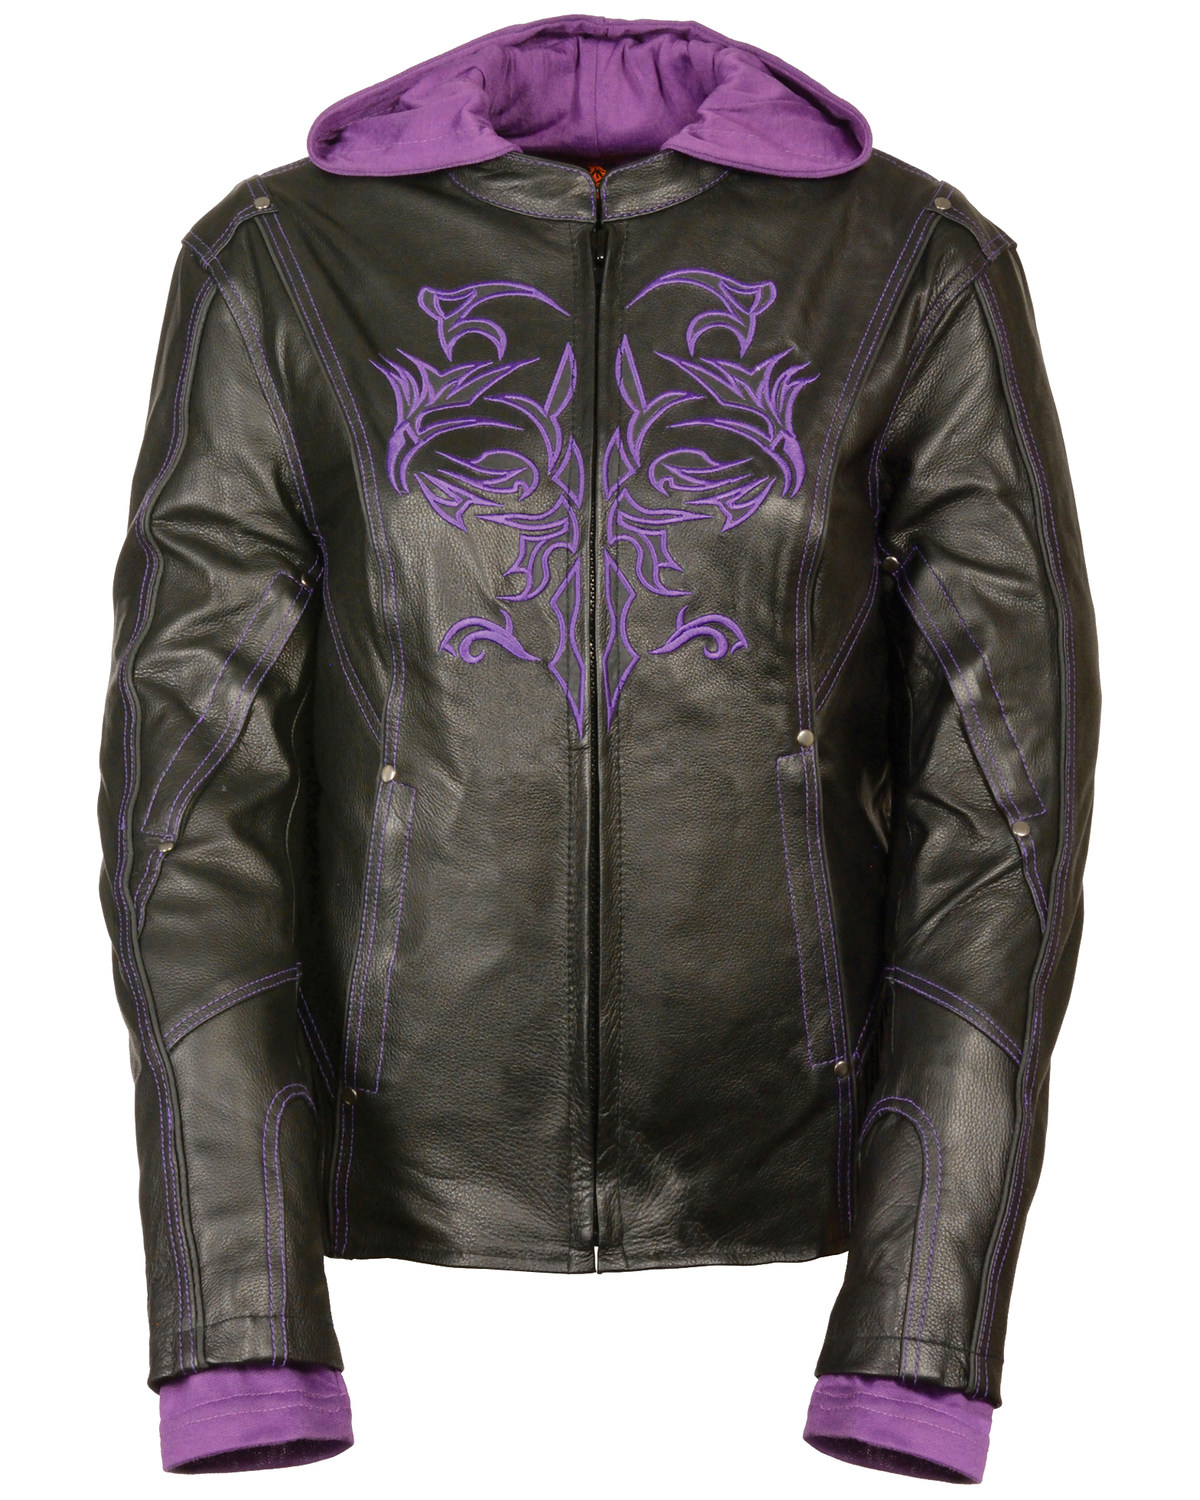 Milwaukee Leather Women S 3 4 Jacket With Reflective Tribal Detail